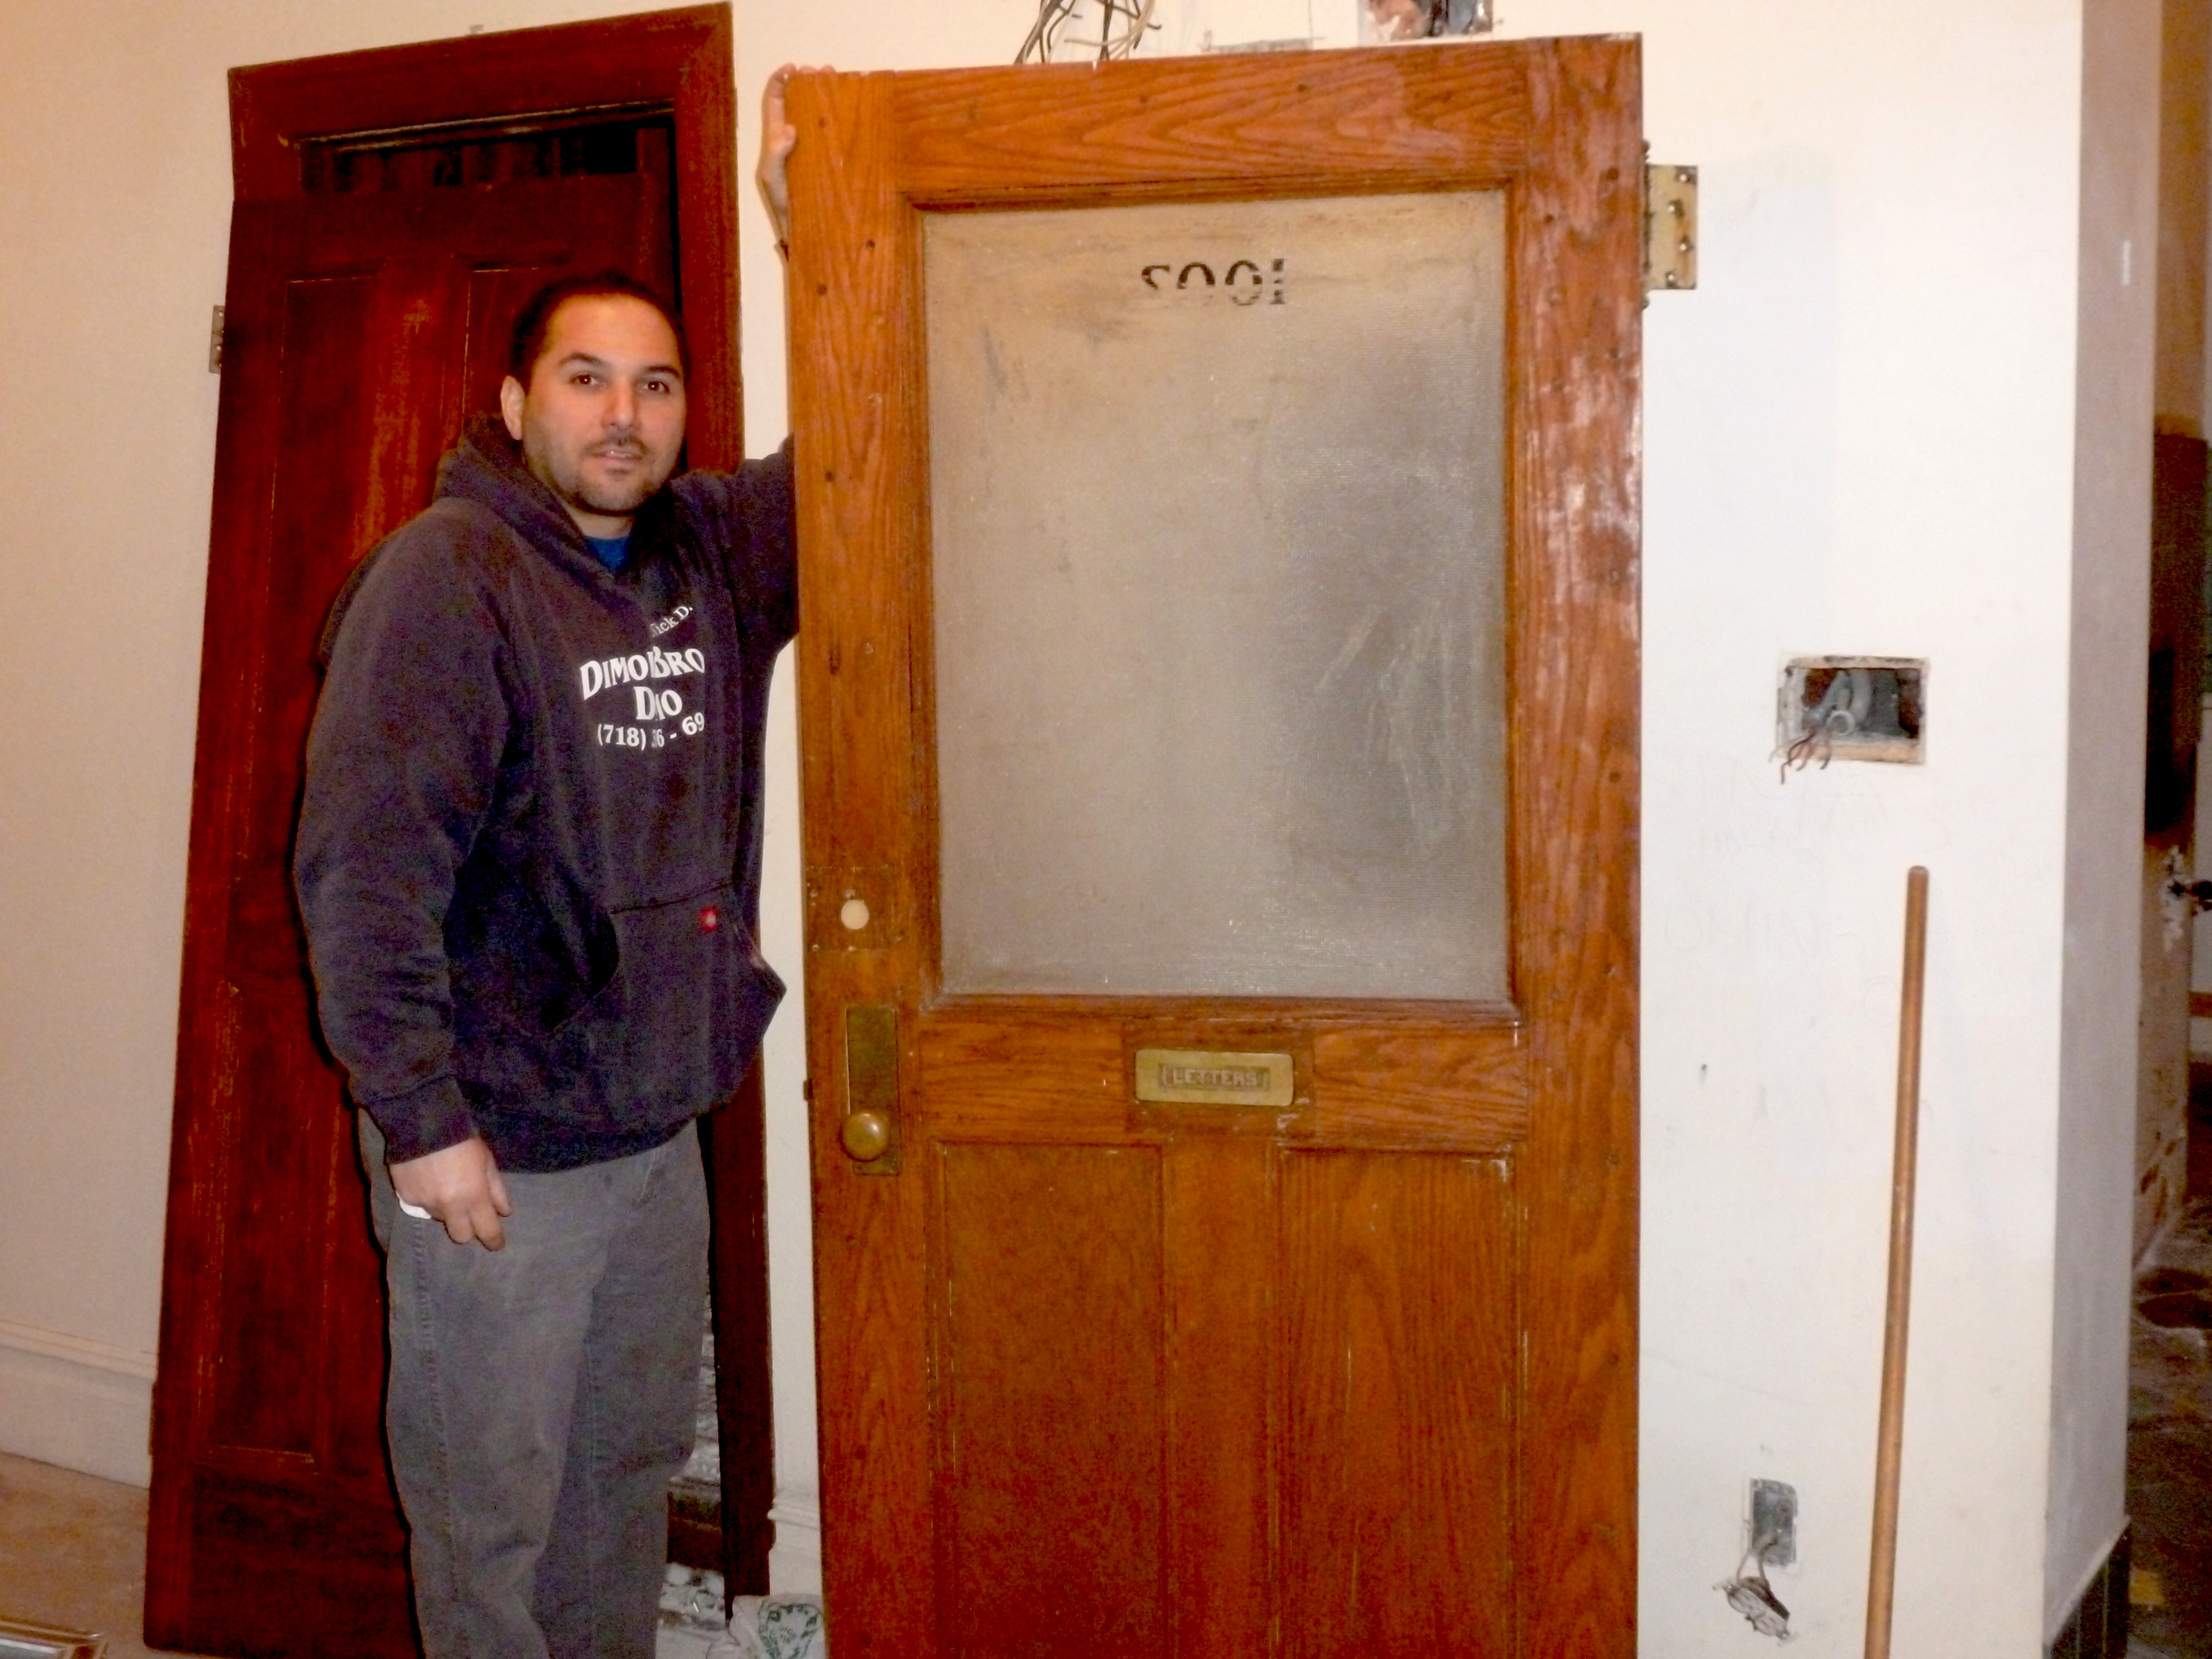 DiMola opens new doors in NYC apartment wall removal job  sc 1 st  Trash Treasures of New York City - WordPress.com & DiMola opens new doors in NYC apartment wall removal job | Trash ...